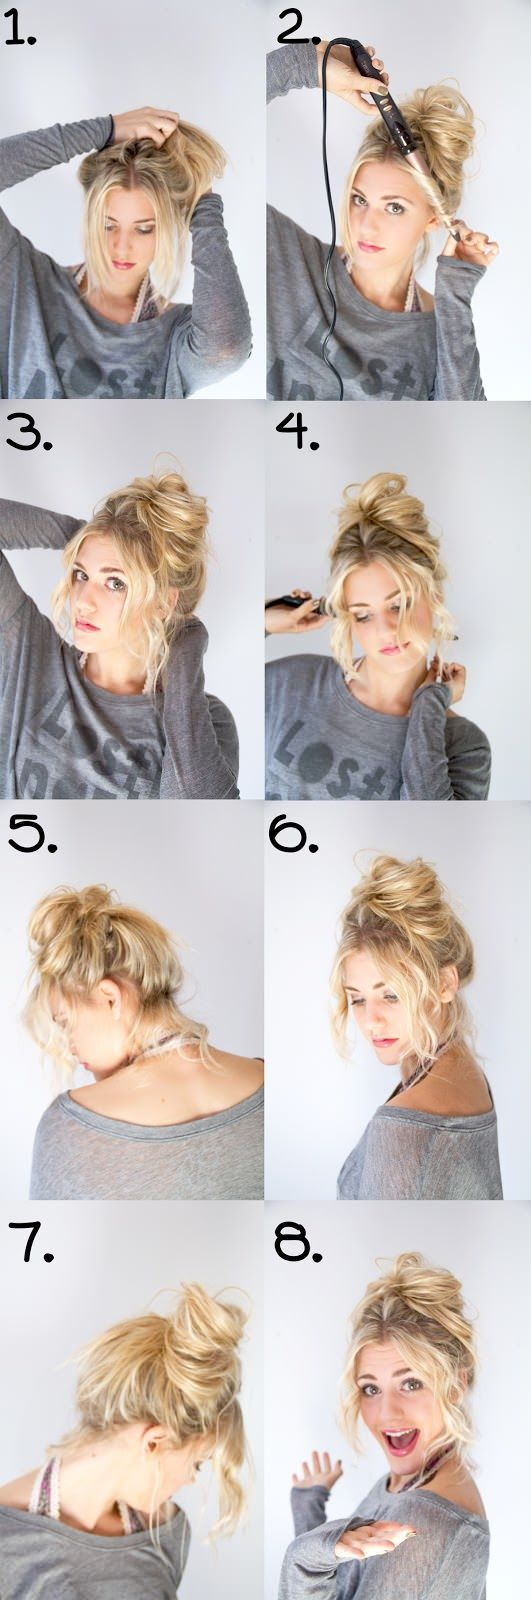 Dirty hair perfection